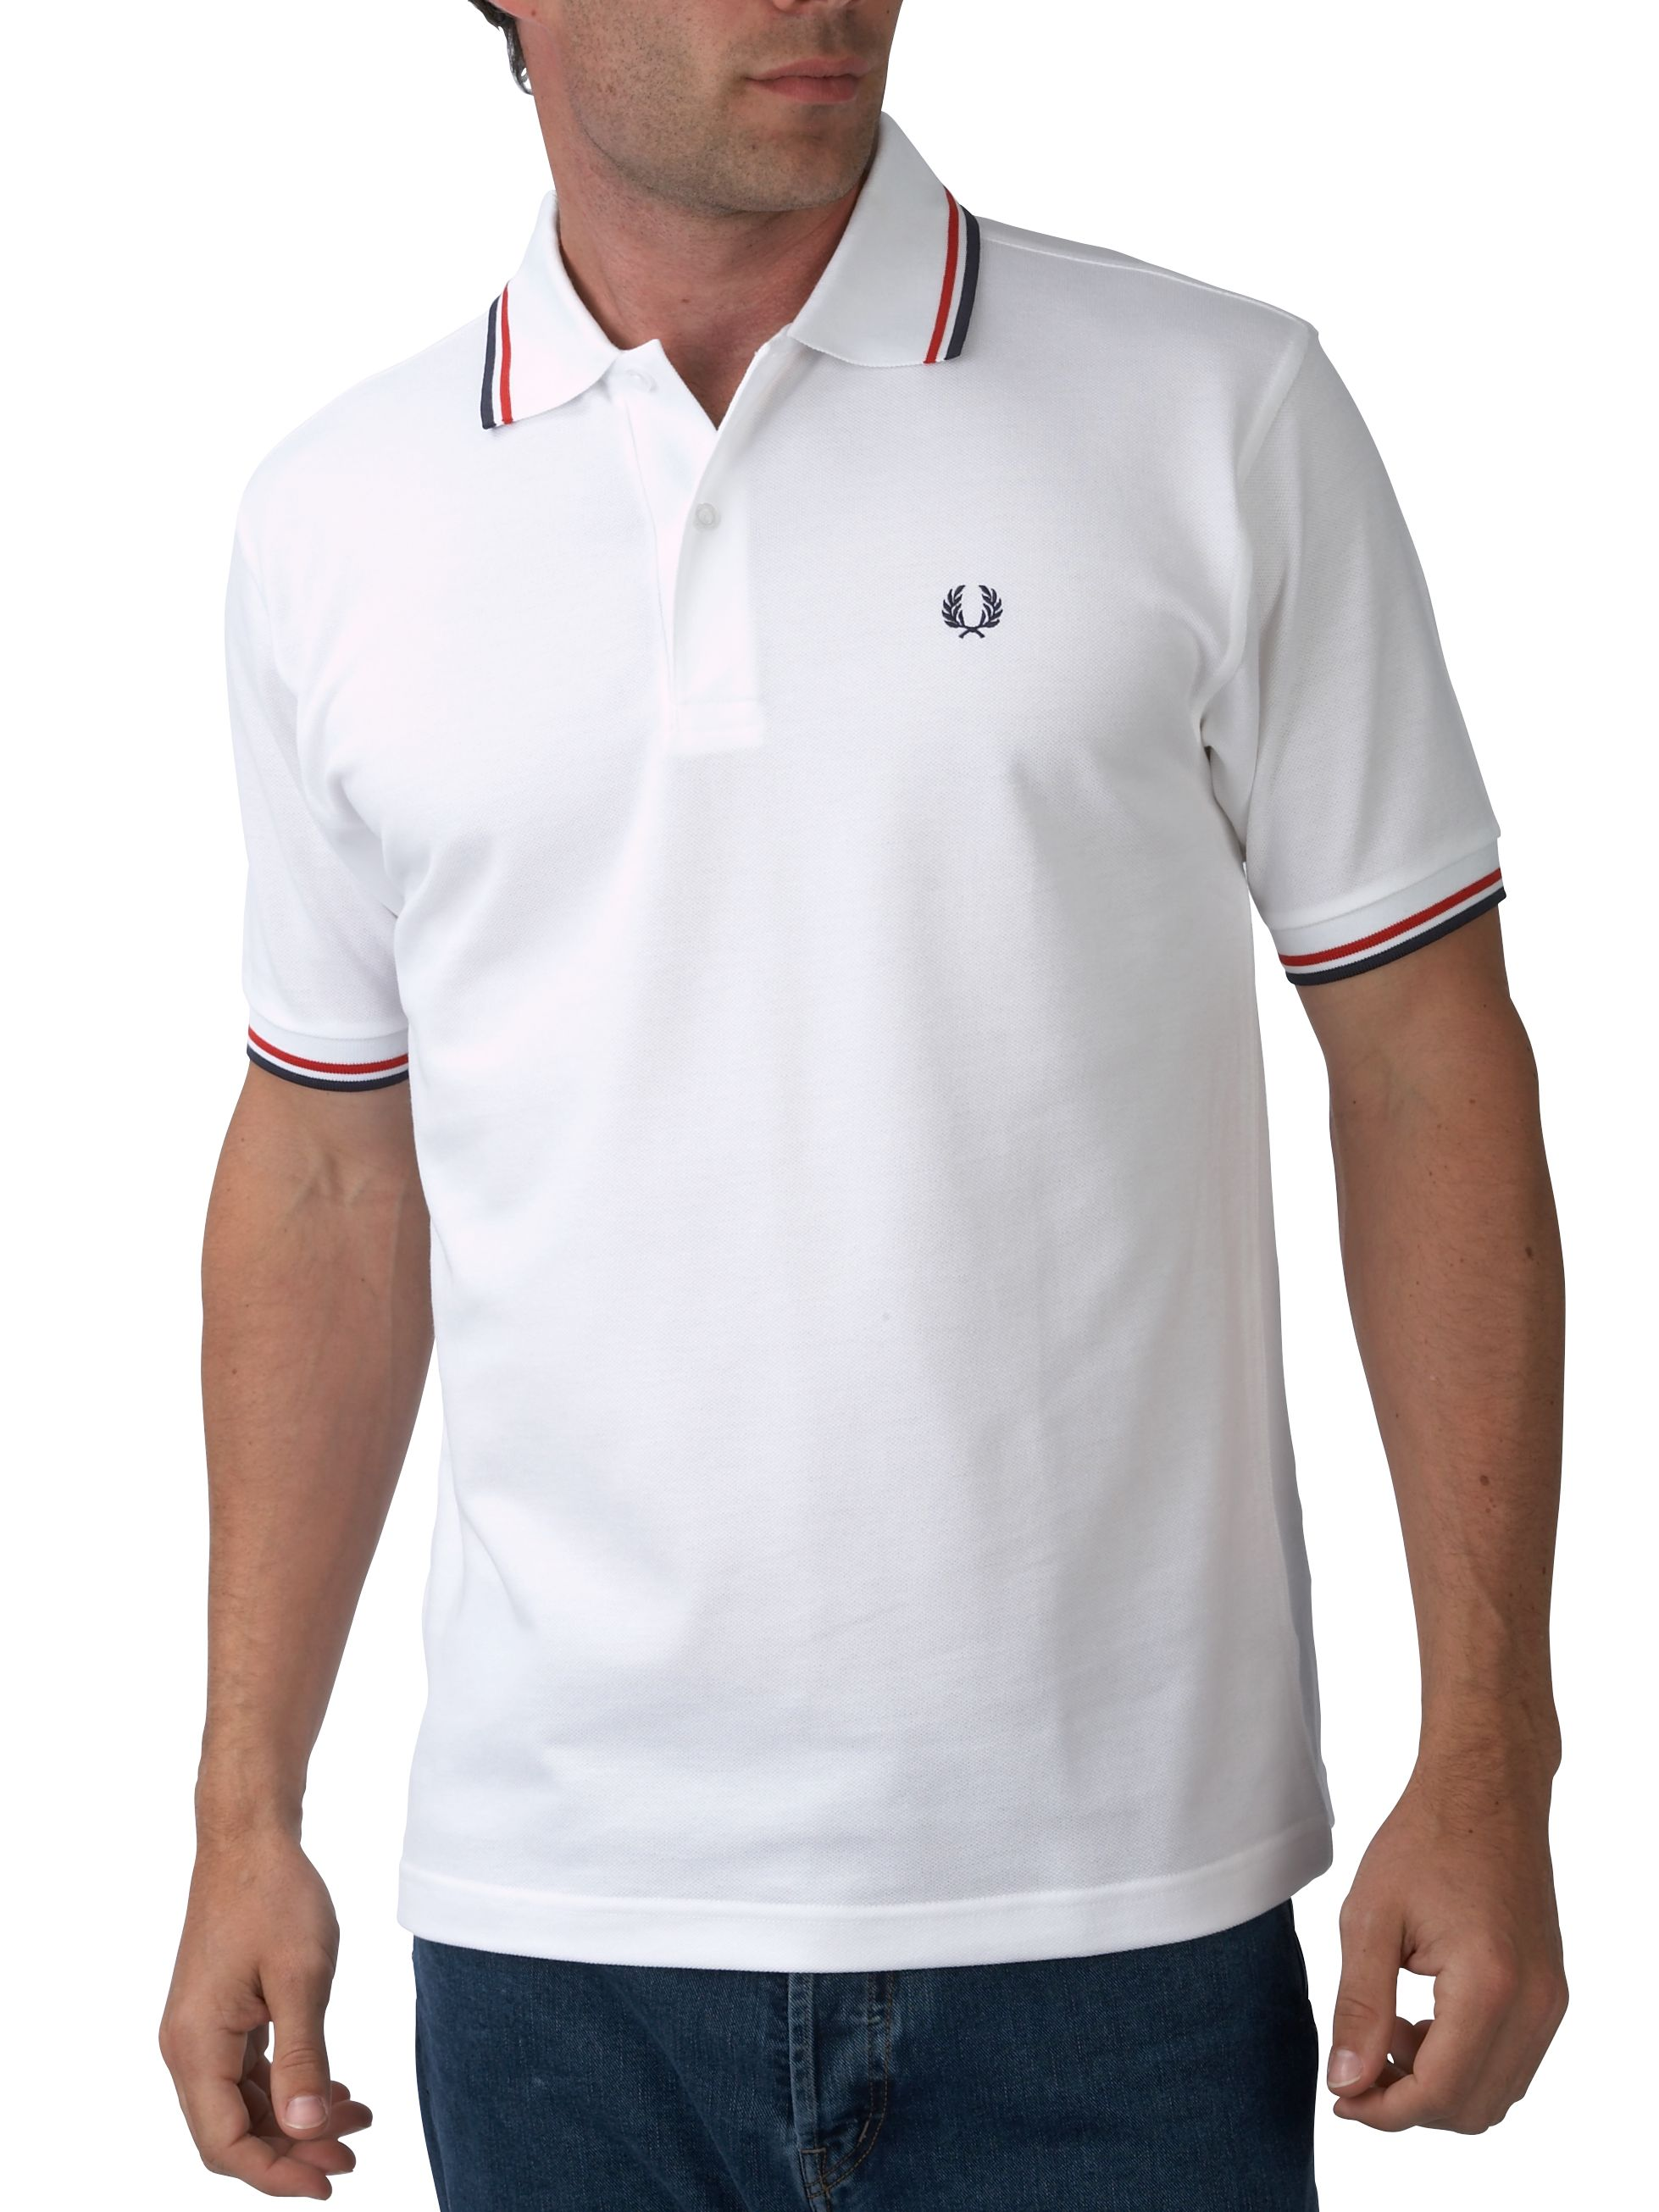 cheap fred perry polo shirts sale items at discount uk prices. Black Bedroom Furniture Sets. Home Design Ideas